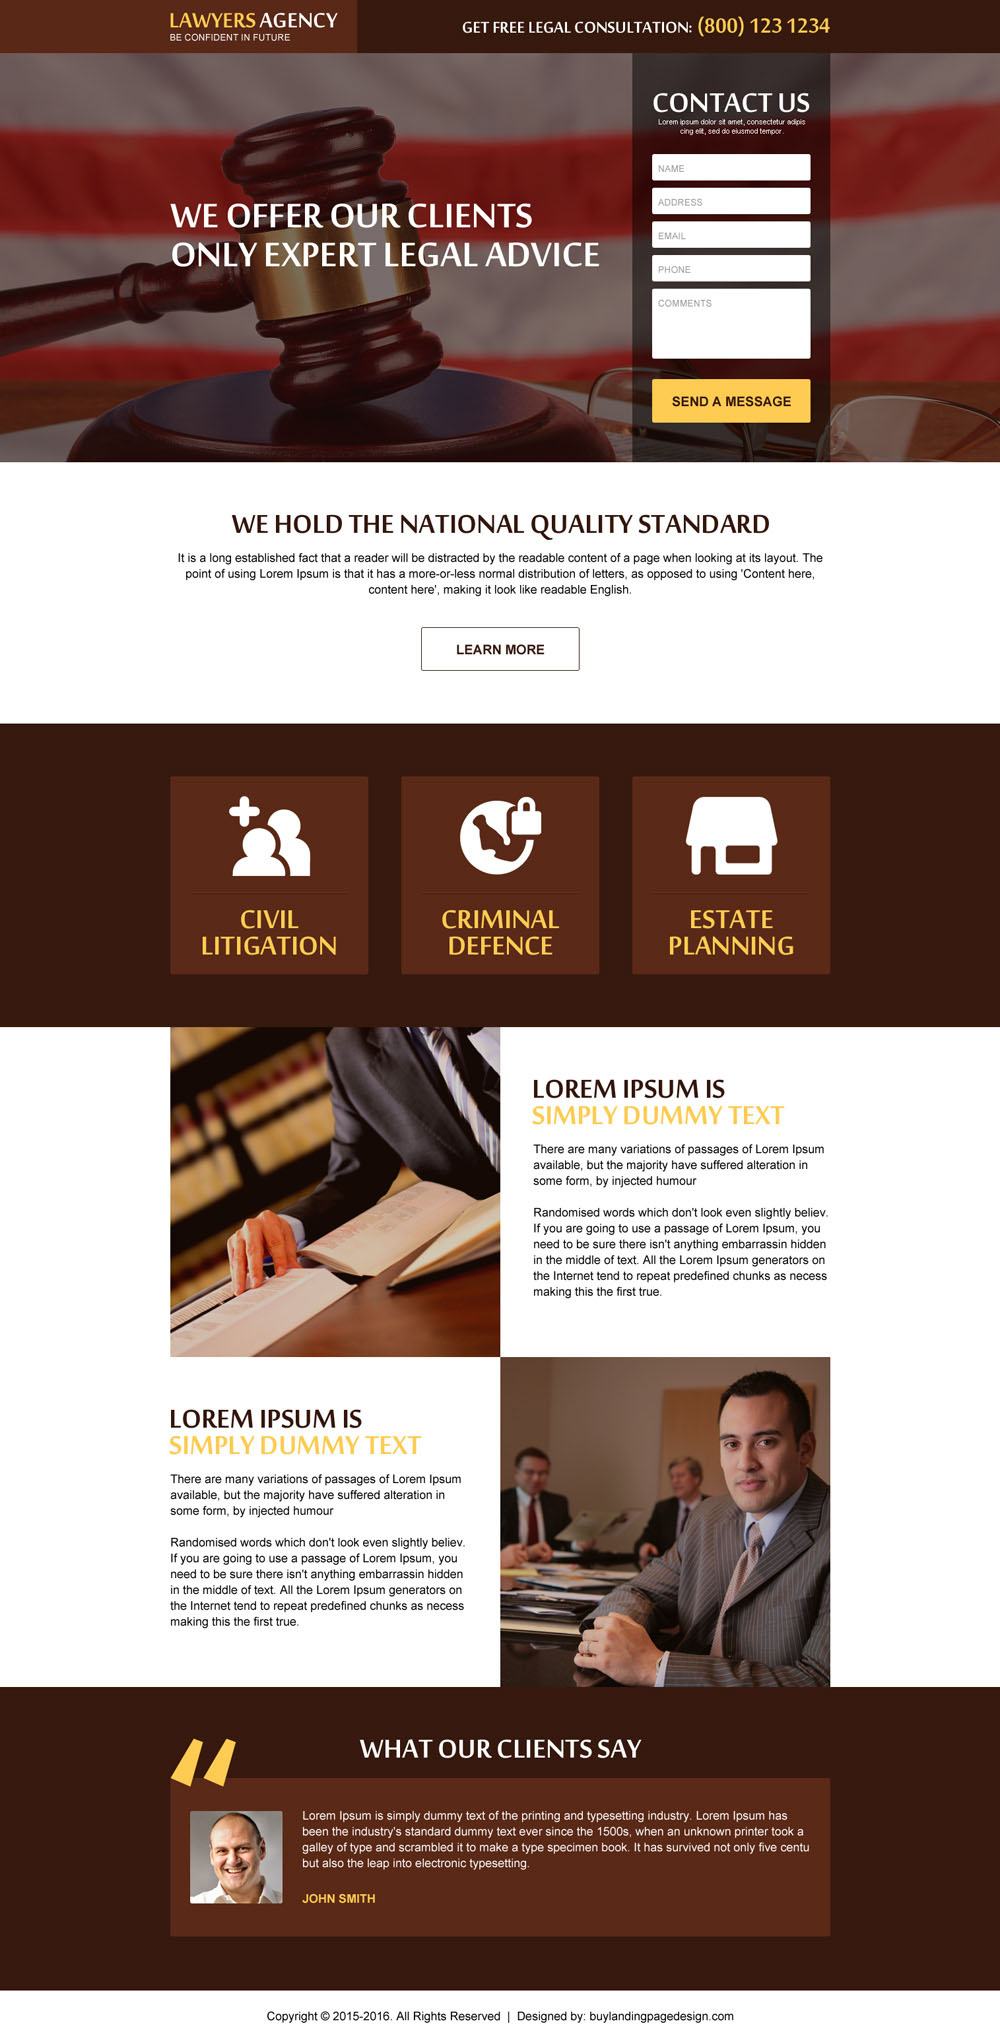 get-free-legal-consultation-with-expert-laywers-lead-cpatures-landing-page-design-008